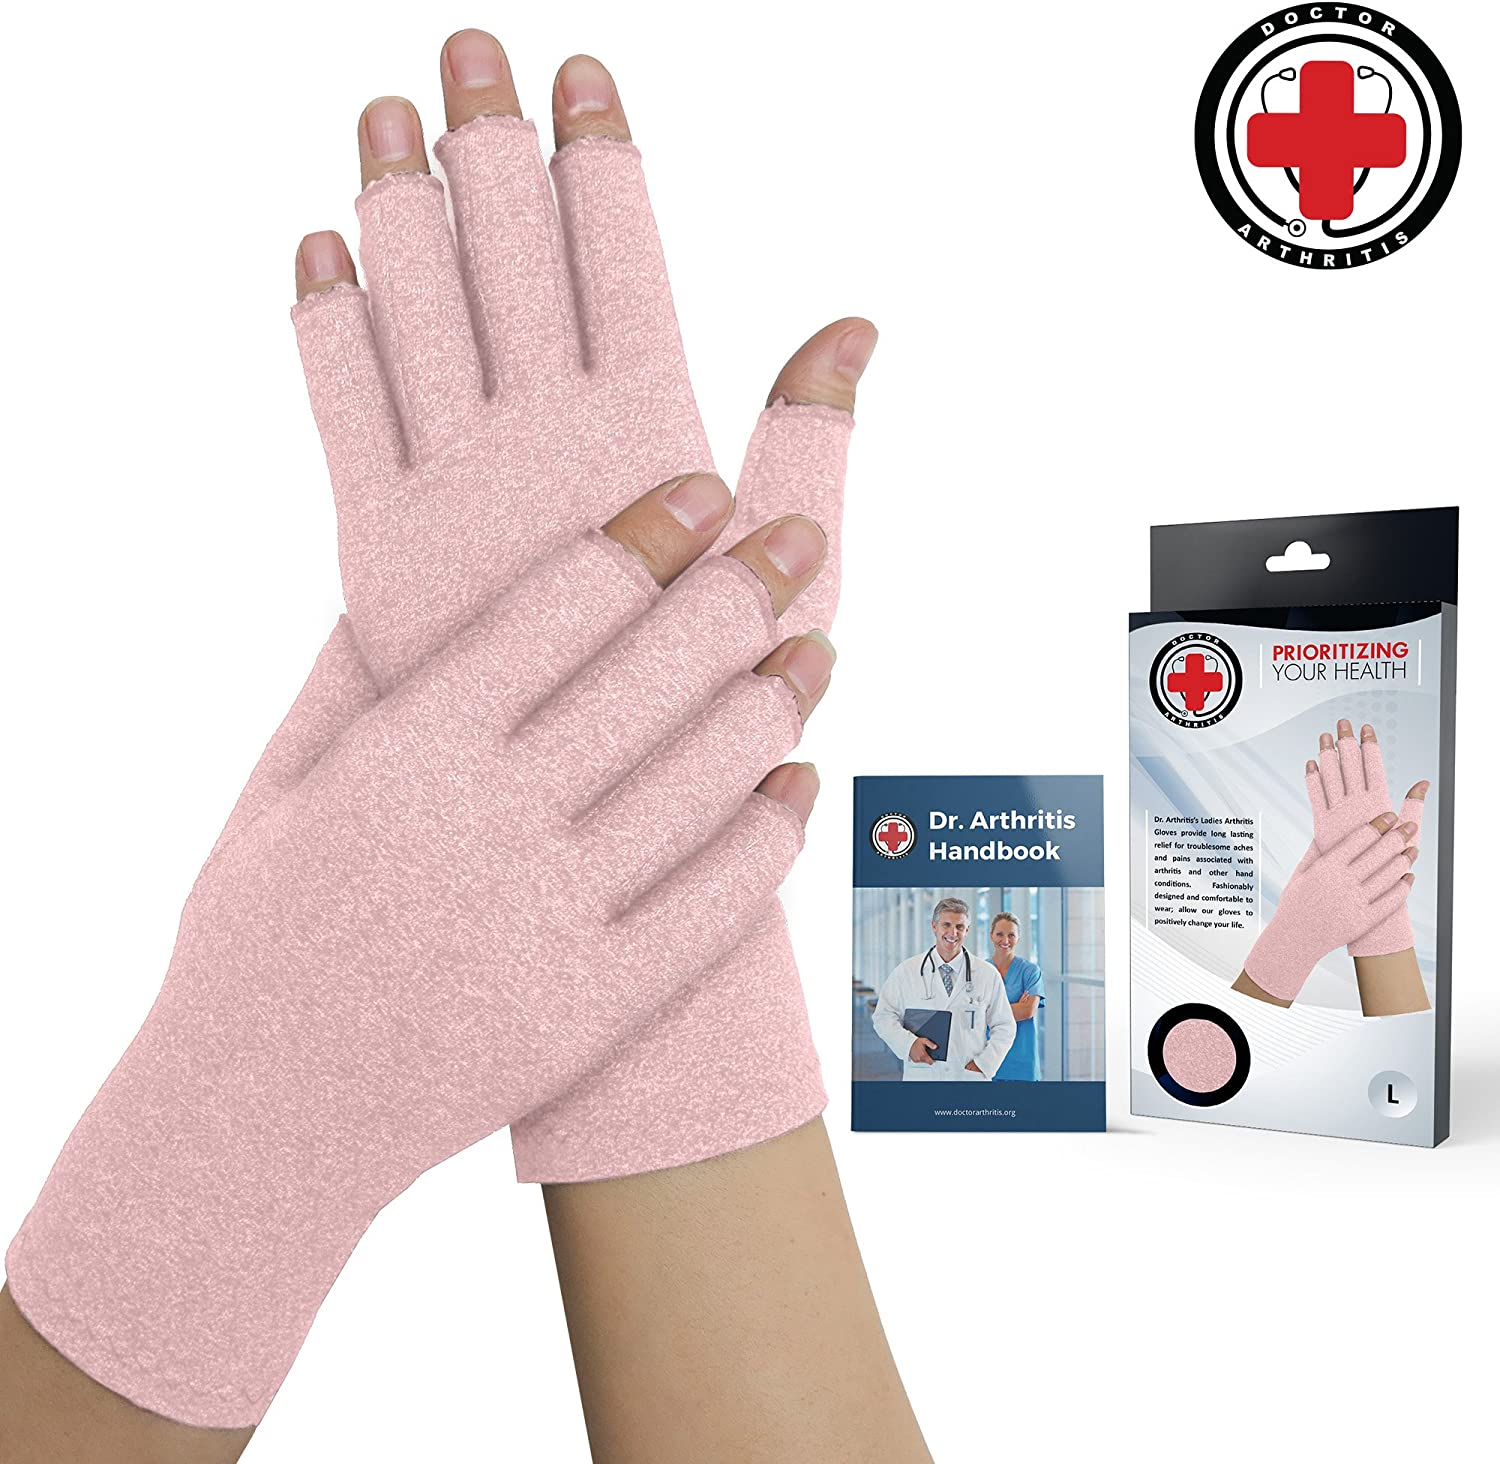 Doctor Developed Pink Ladies Arthritis Compression Gloves and Doctor Written Handbook -Relieve Arthritis Symptoms, Raynauds Disease & Carpal Tunnel (Medium)